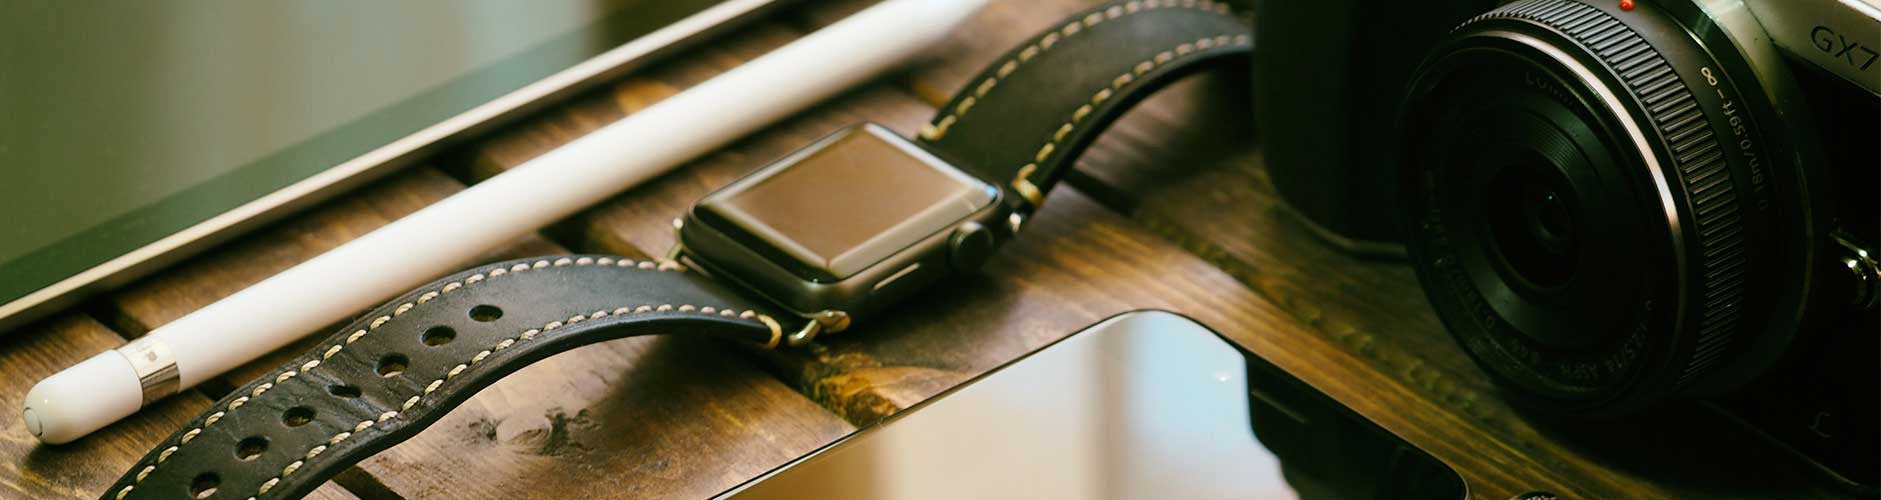 Shop Curated Lifestyle Accessories - Benny's Boardroom